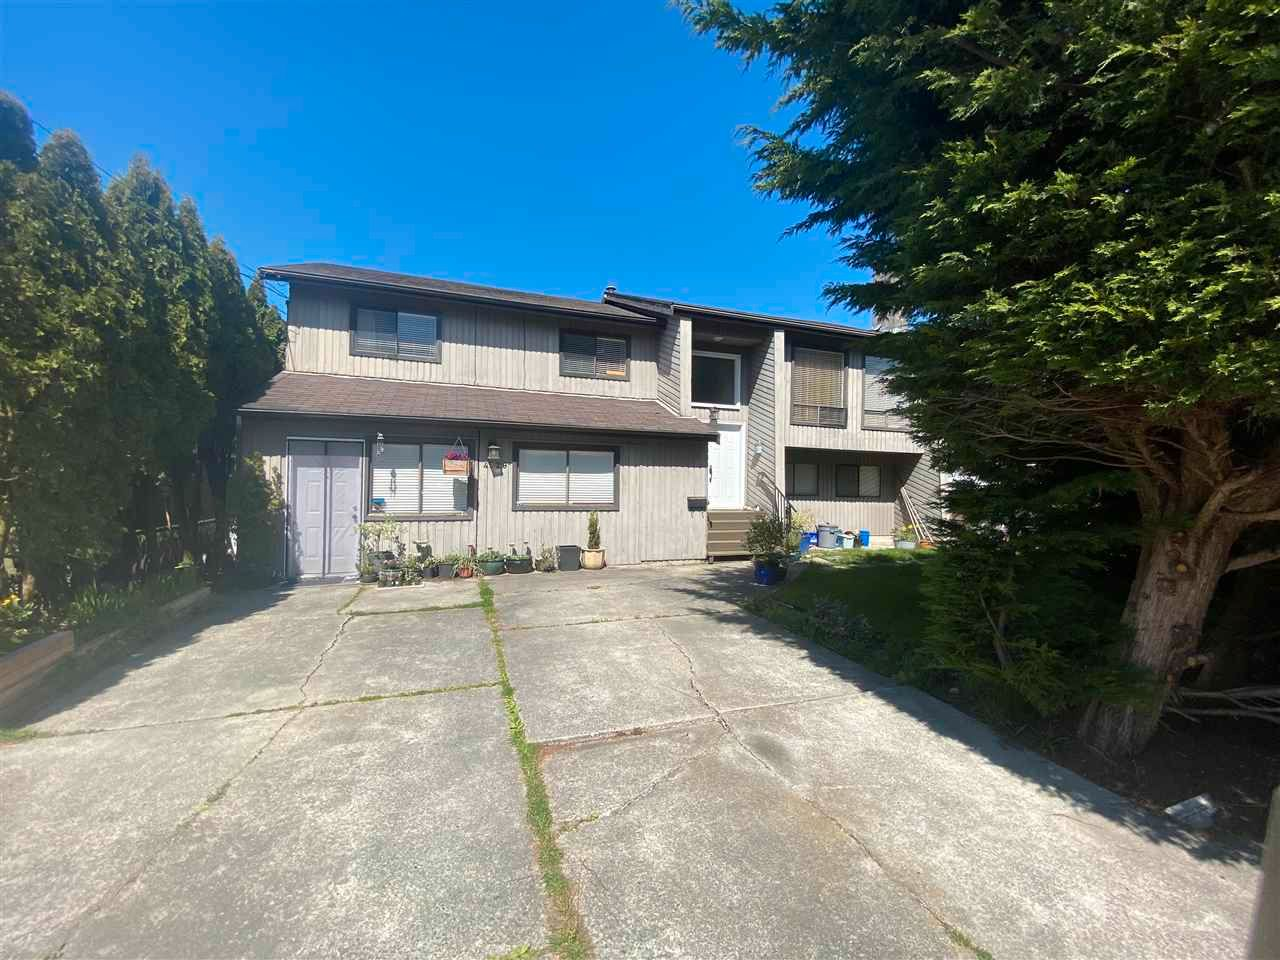 Main Photo: 4529 SAVOY Street in Ladner: Port Guichon House for sale : MLS®# R2577684